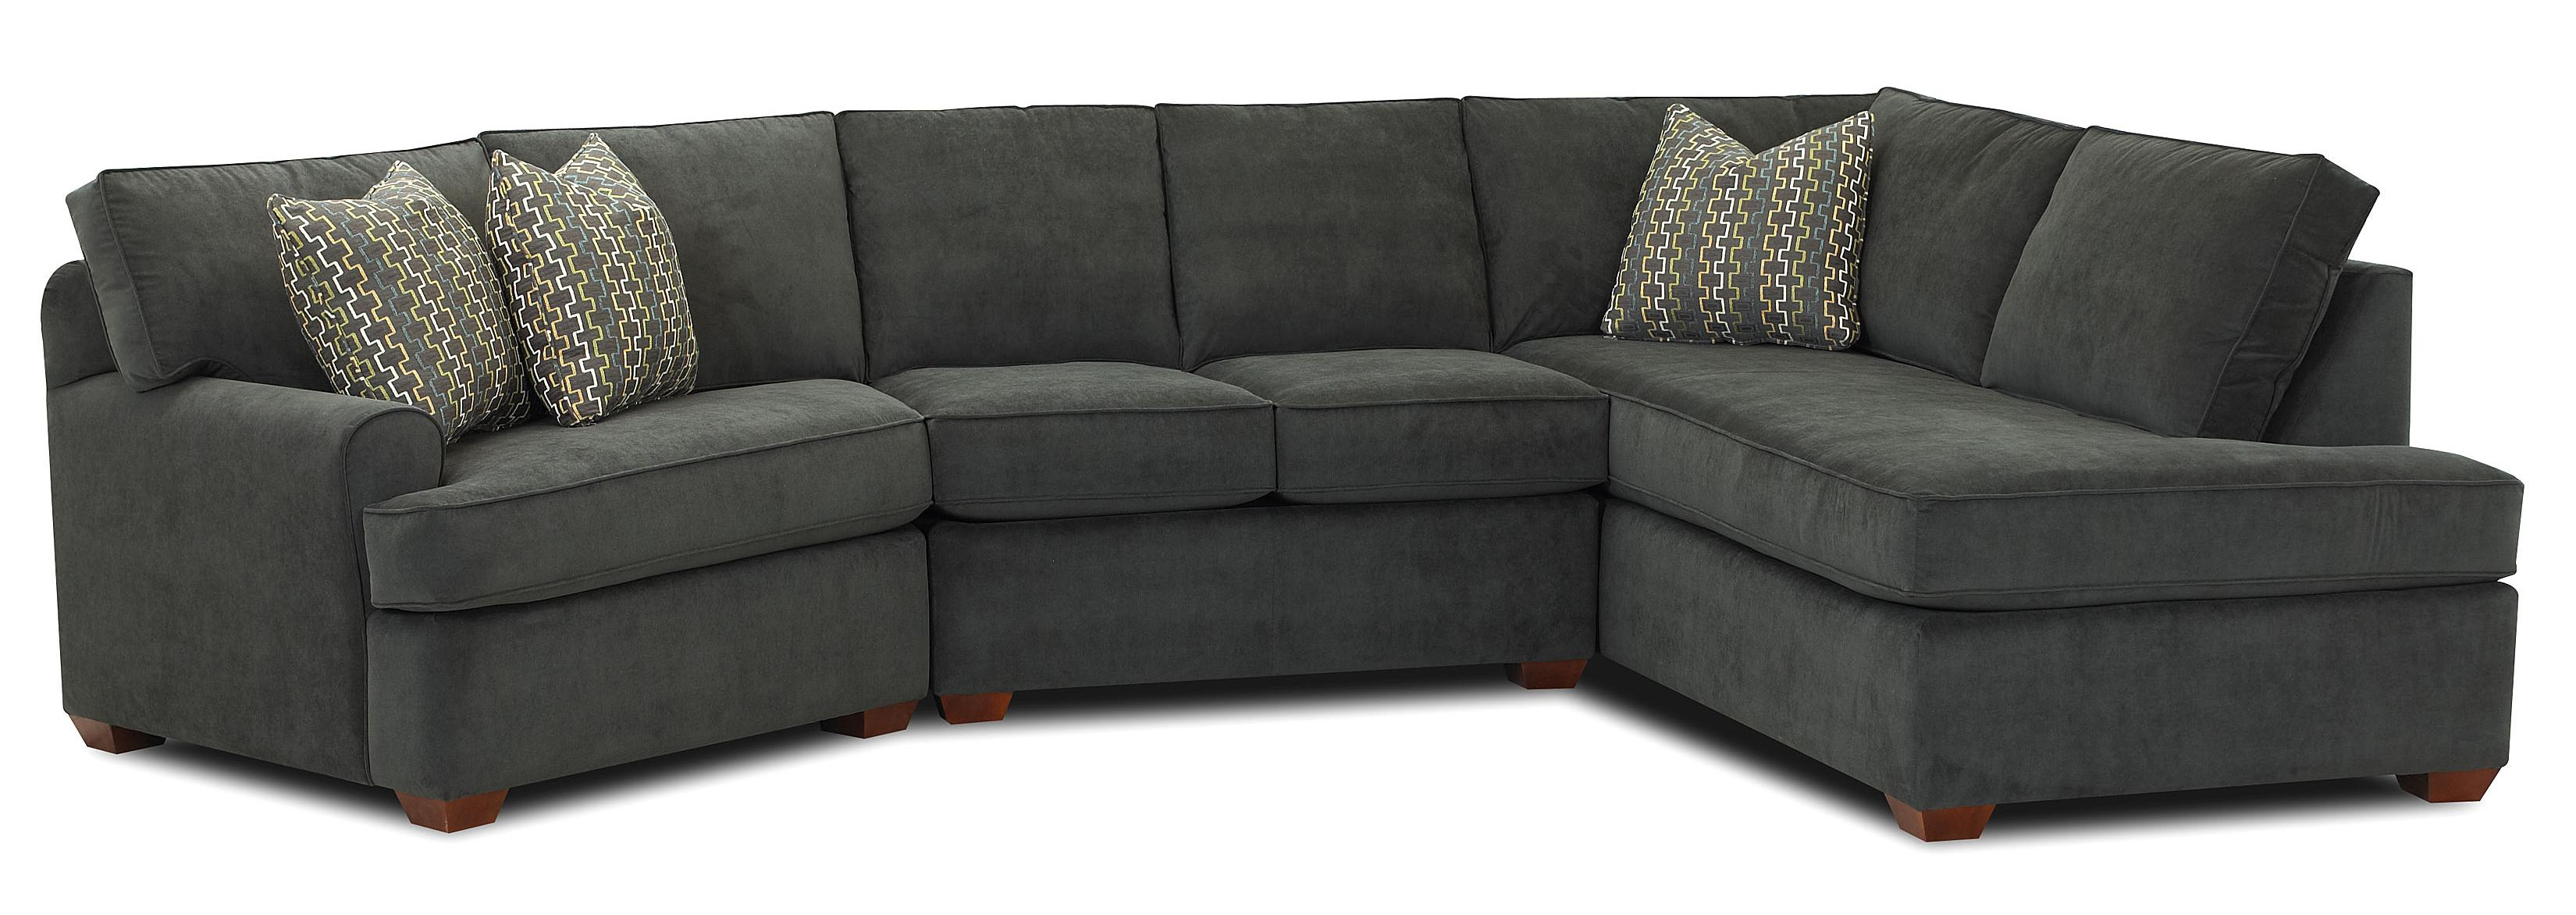 Sectional sofa with right facing sofa chaise by klaussner wolf and gardiner wolf furniture Loveseat chaise sectional